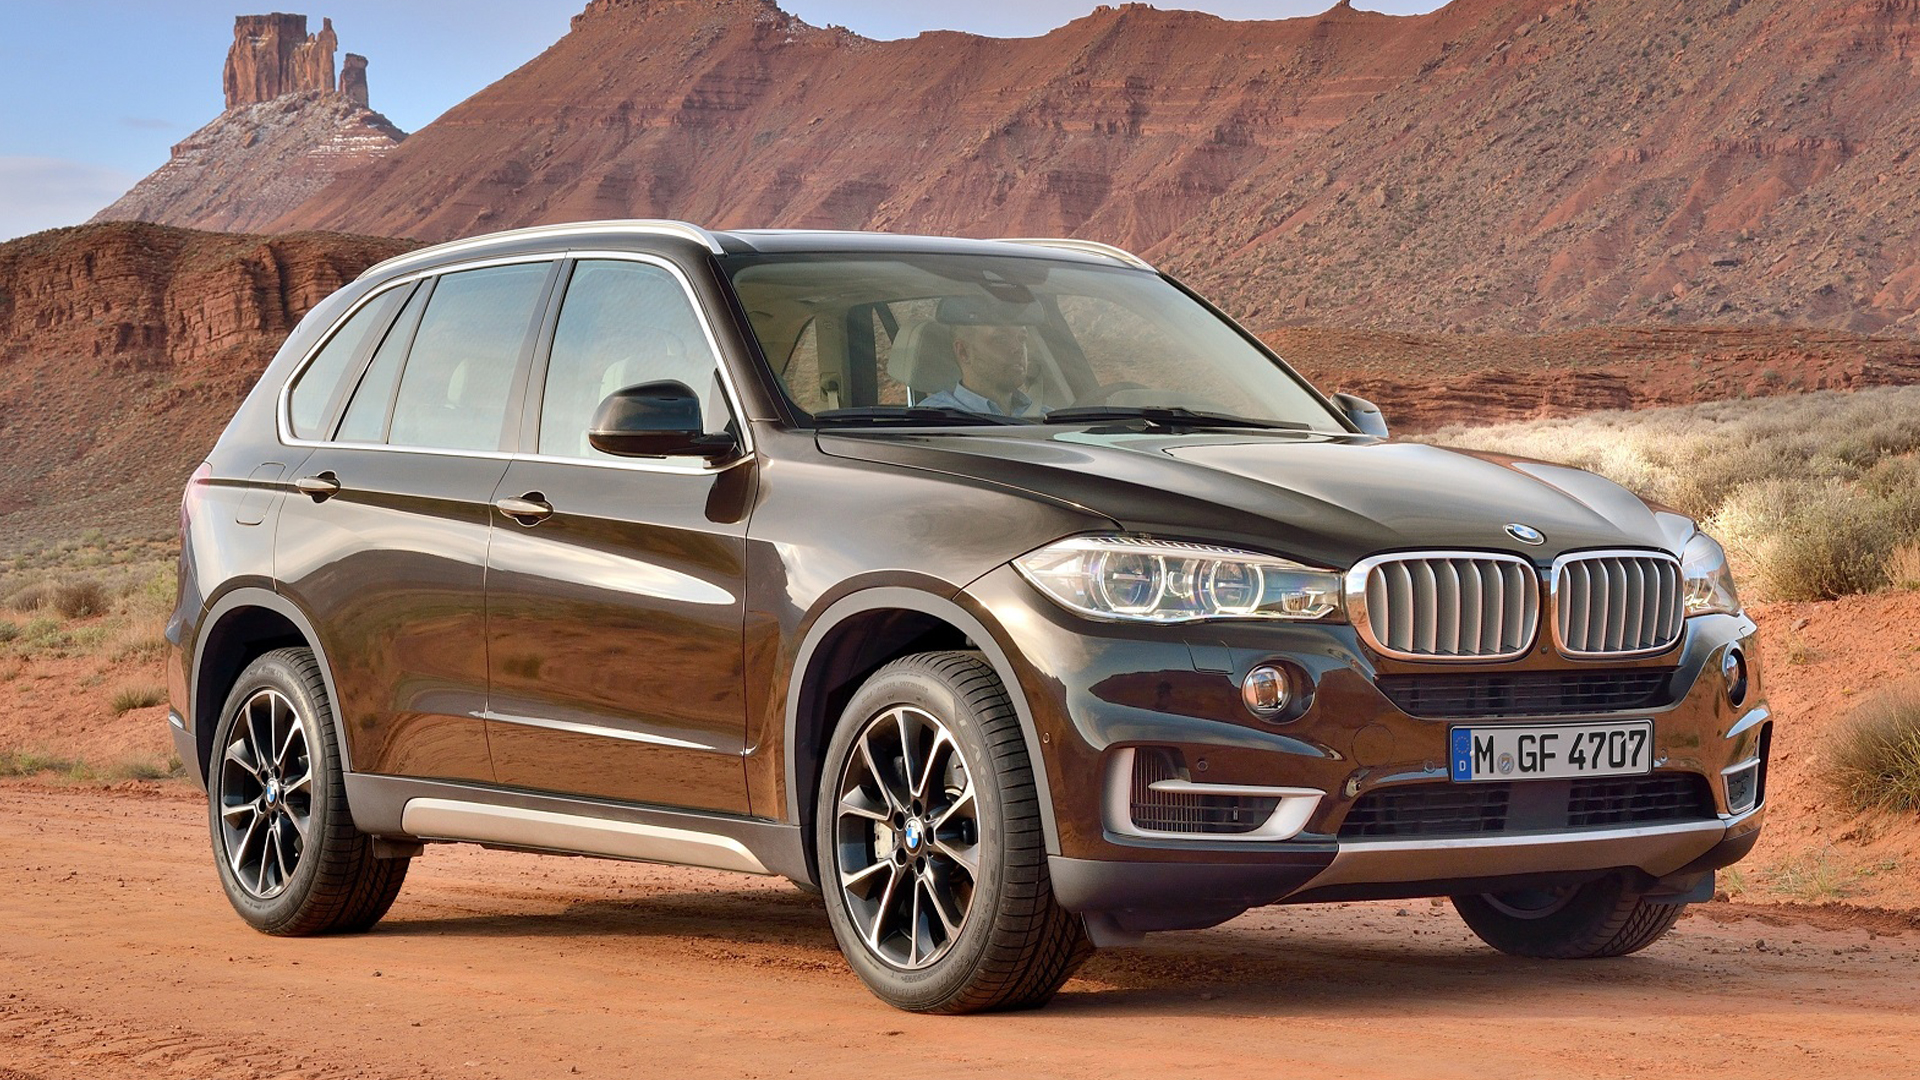 bmw x5 2017 price mileage reviews specification gallery overdrive. Black Bedroom Furniture Sets. Home Design Ideas